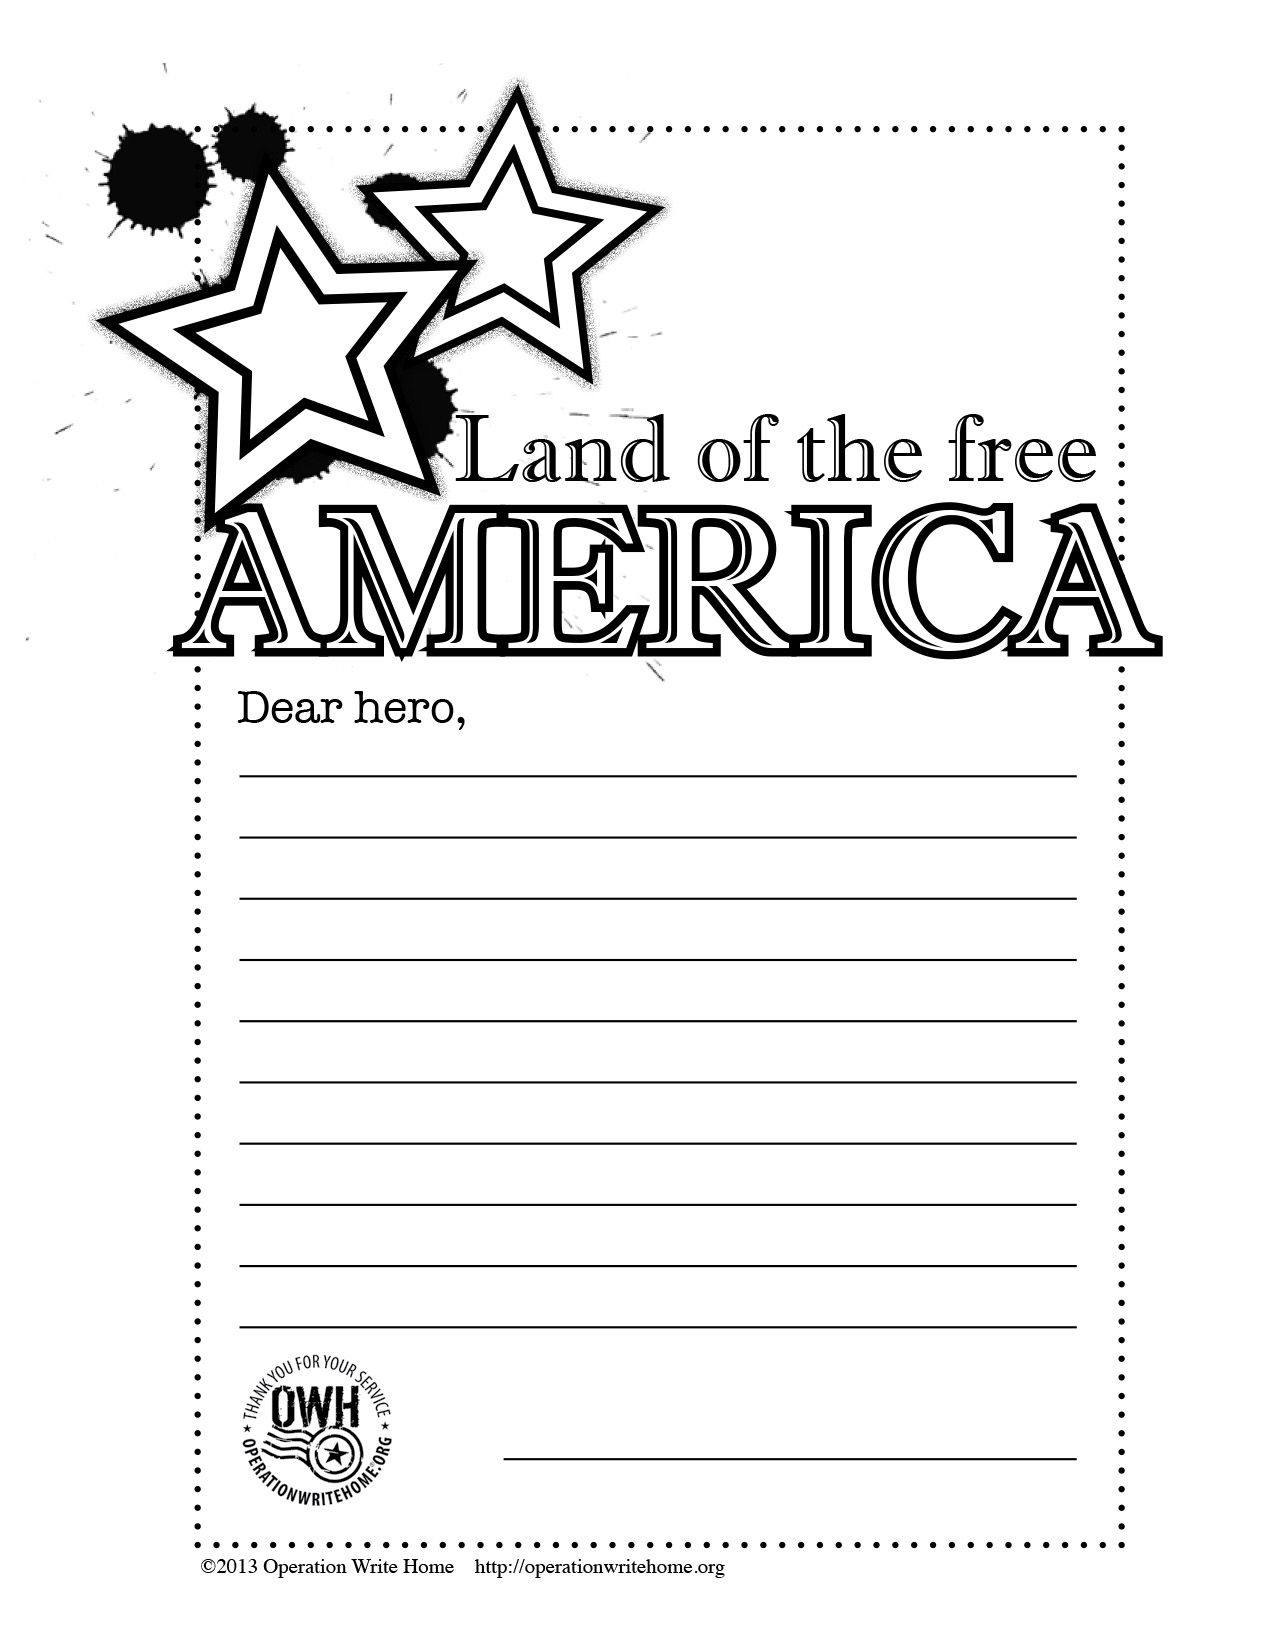 FREE Coloring pages! Operation Write Home Letters to